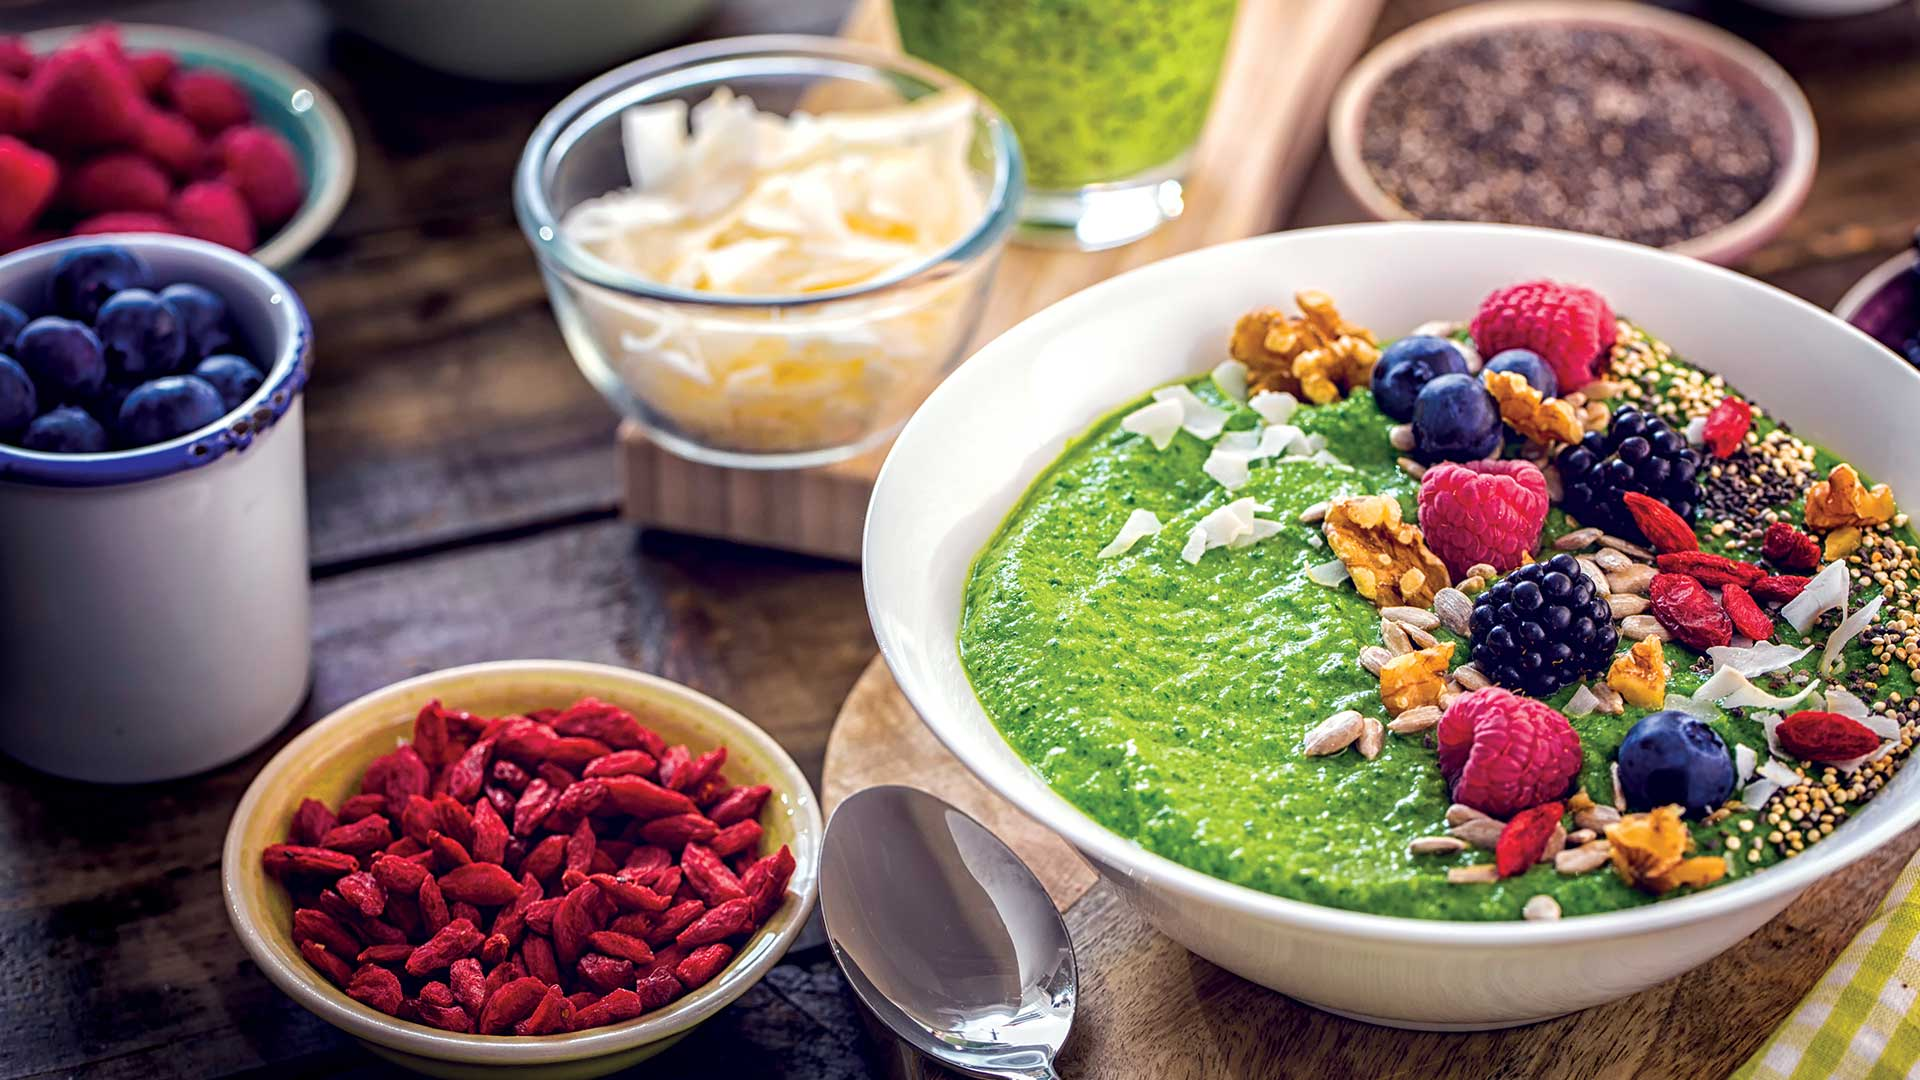 Healthy breakfast - colorful and tasty food with special powers